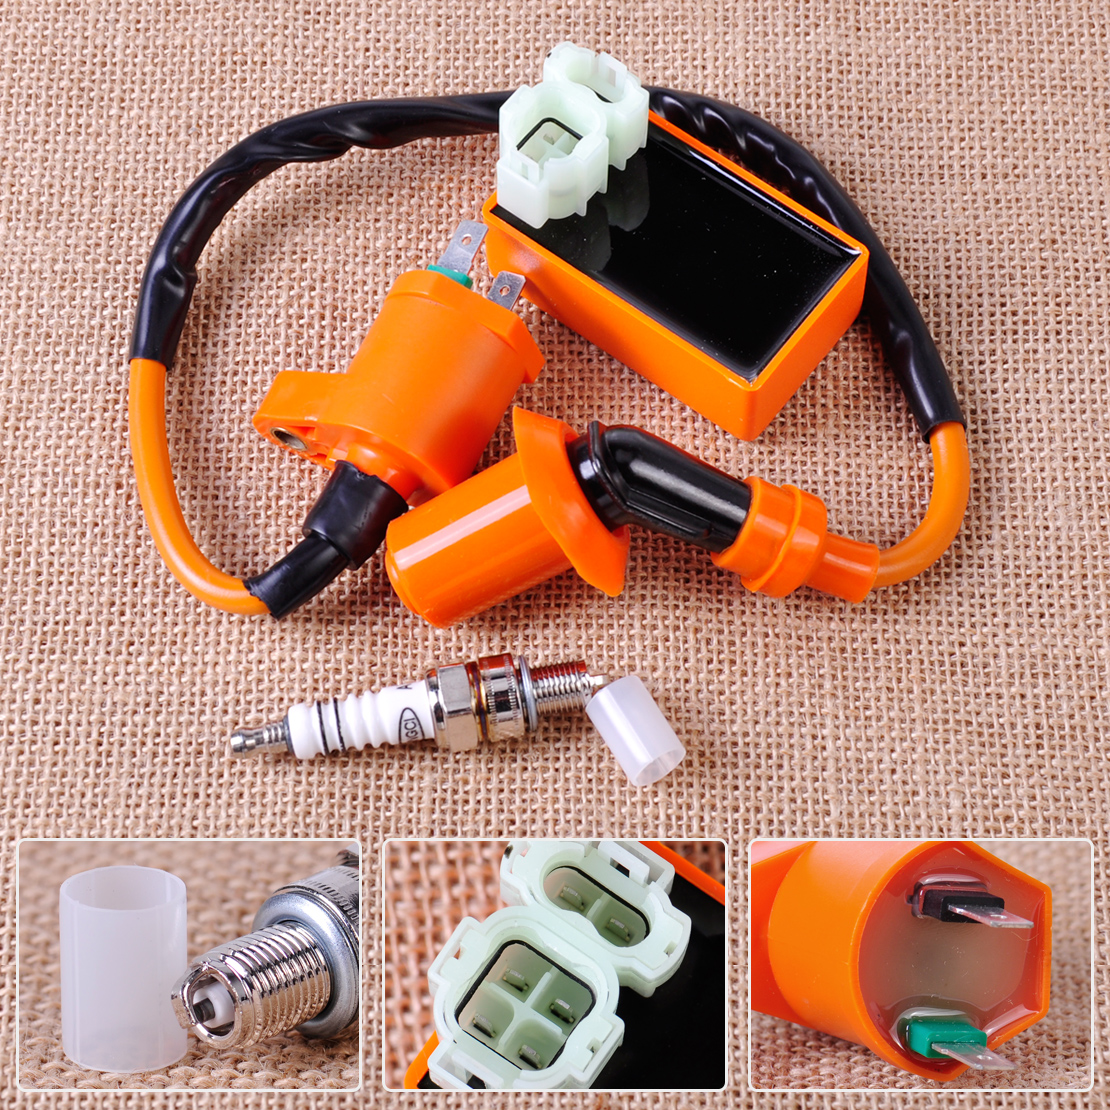 Racing Ignition Coil Orange 6 Pin CDI Box Spark Plug Fit for font b GY6 b